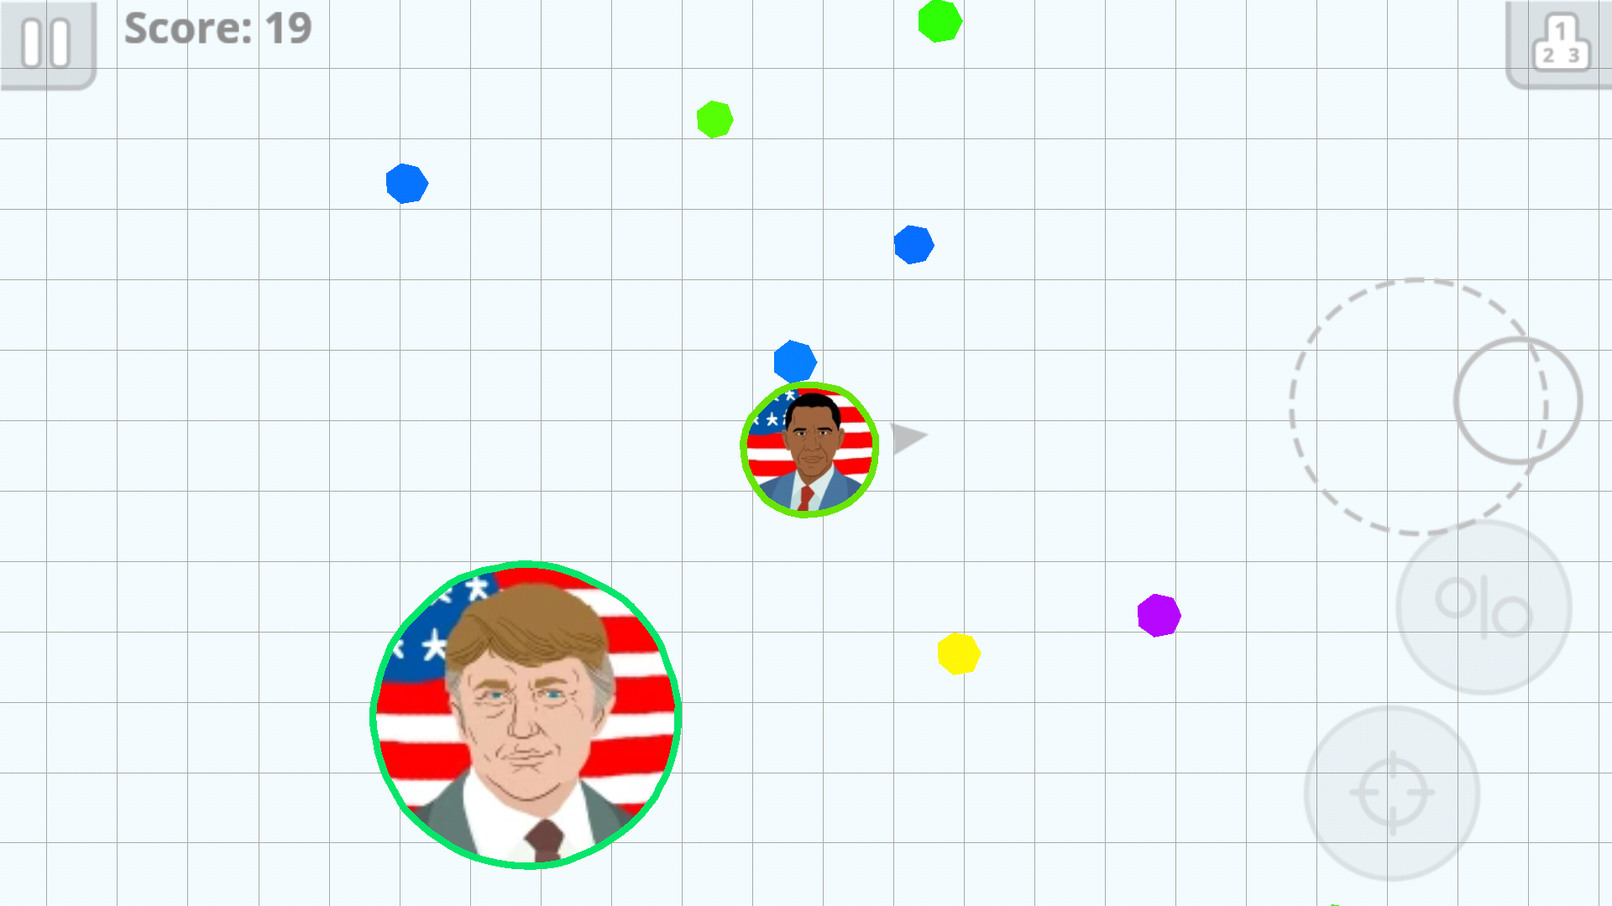 No trump!!! I was playing as obama - meme